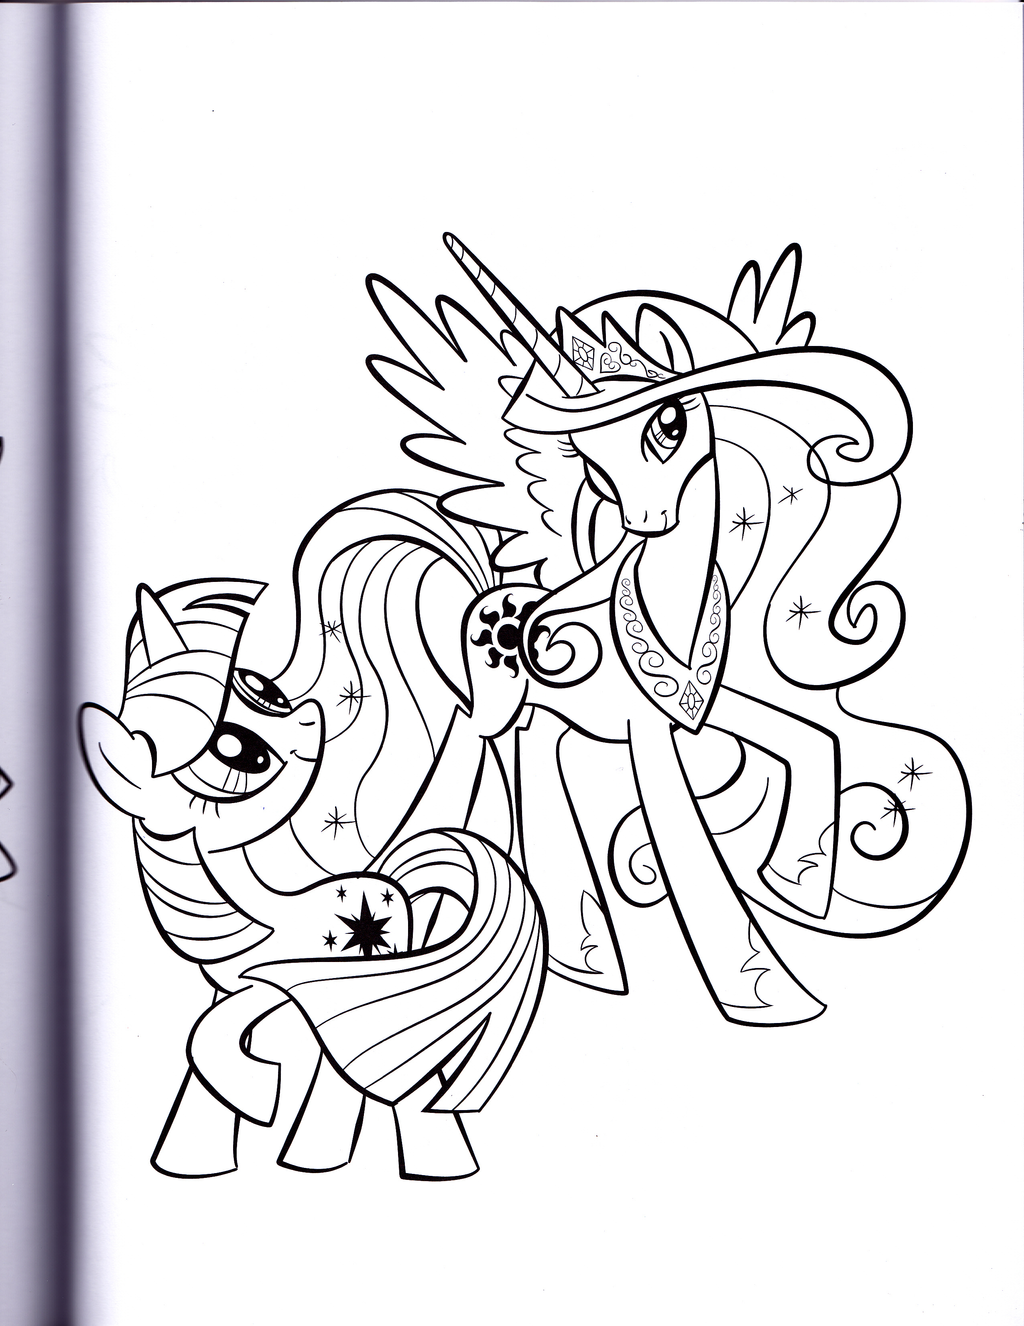 twilight and princess celestia mlp coloring book by kwark85 - Mlp Coloring Book